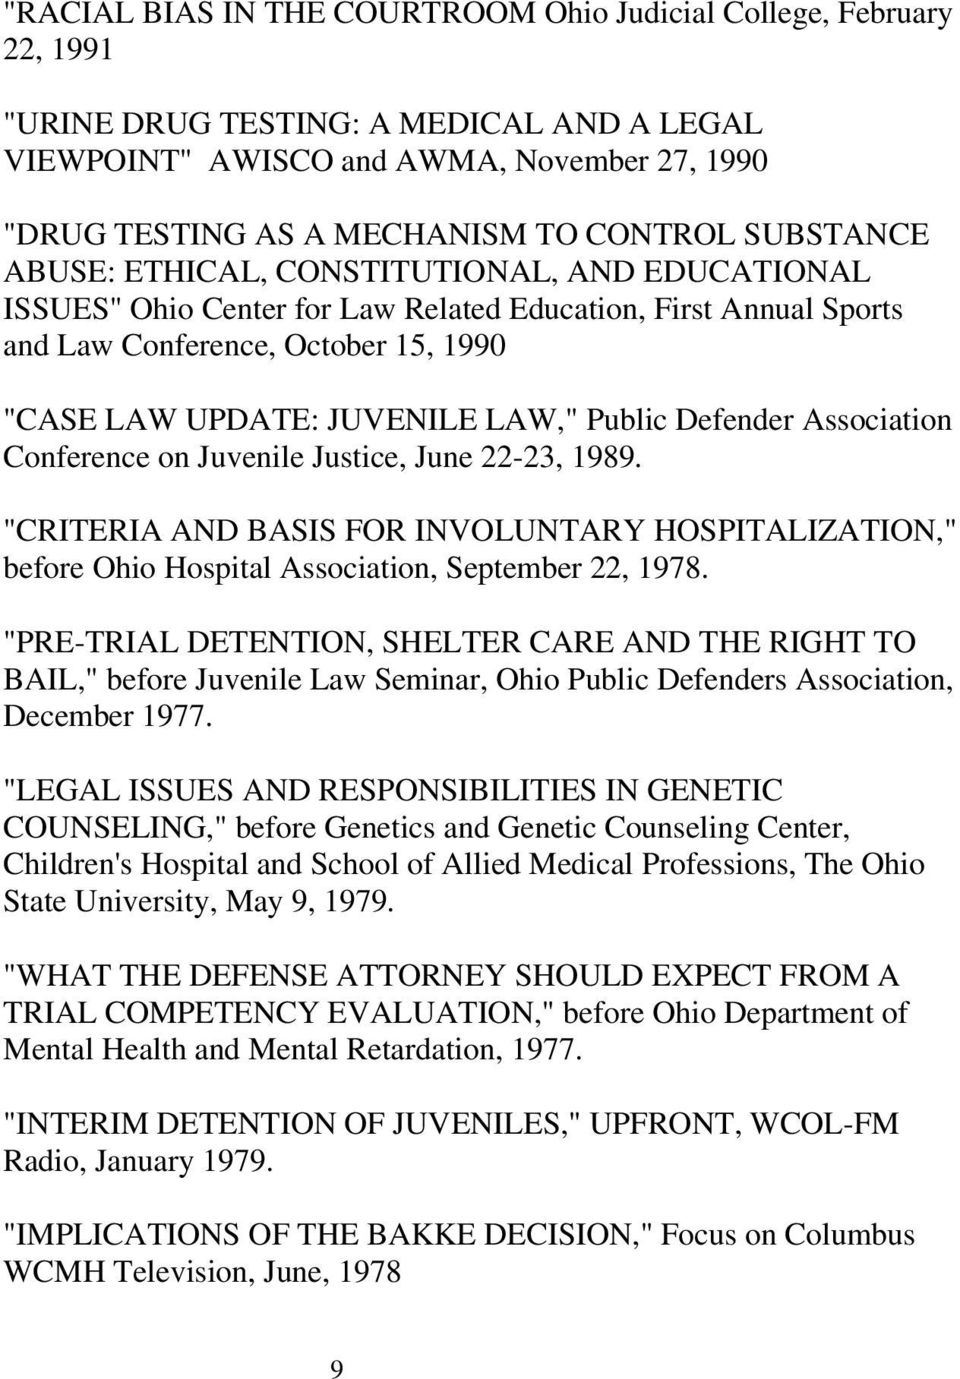 "Public Defender Association Conference on Juvenile Justice, June 22-23, 1989. ""CRITERIA AND BASIS FOR INVOLUNTARY HOSPITALIZATION,"" before Ohio Hospital Association, September 22, 1978."